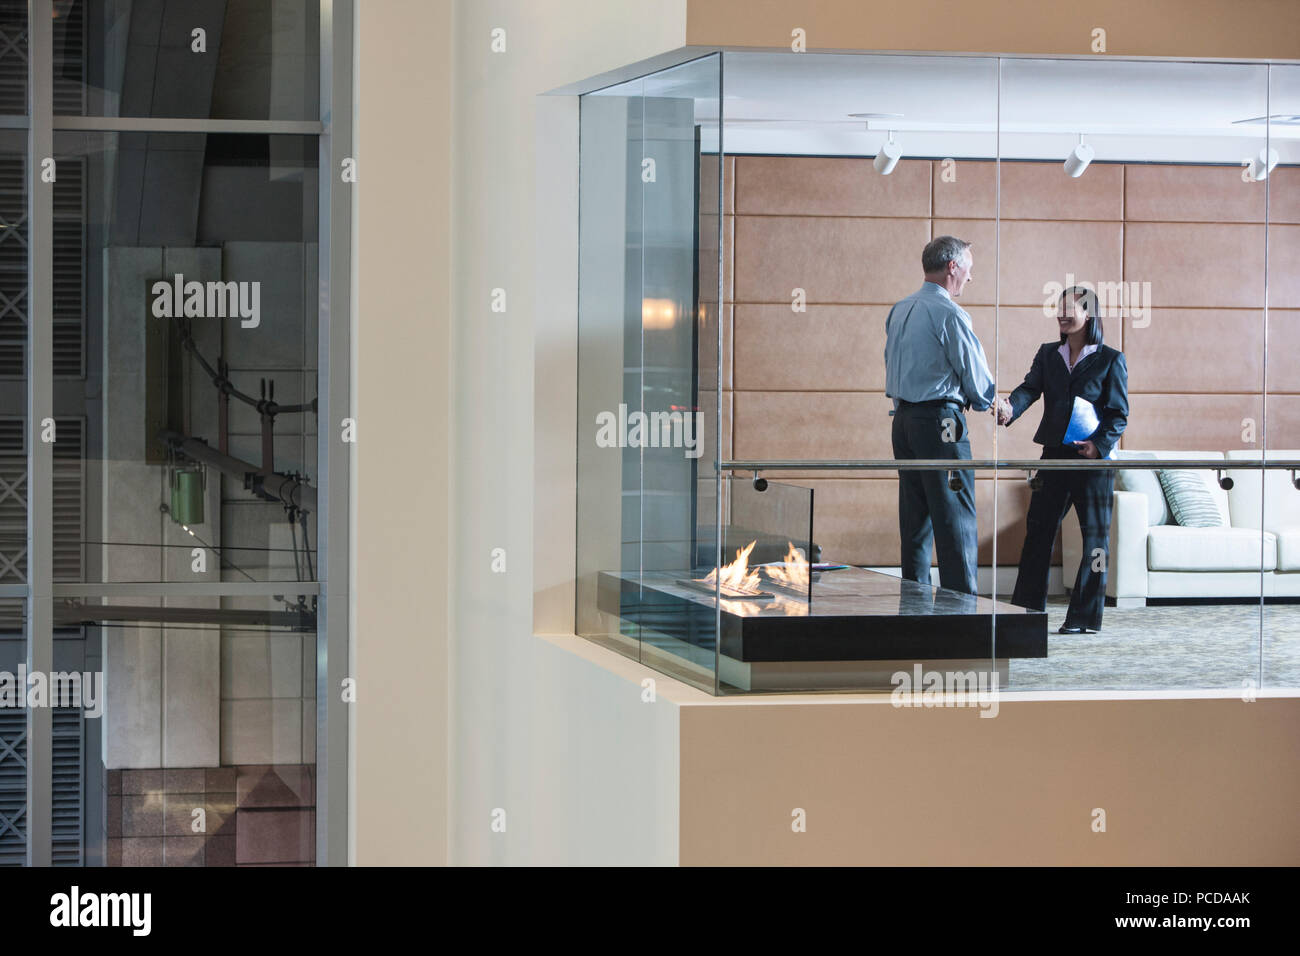 A Large Building Lobby View Looking Into An Office With Glass Walls Two Business People Talking Stock Photo Alamy